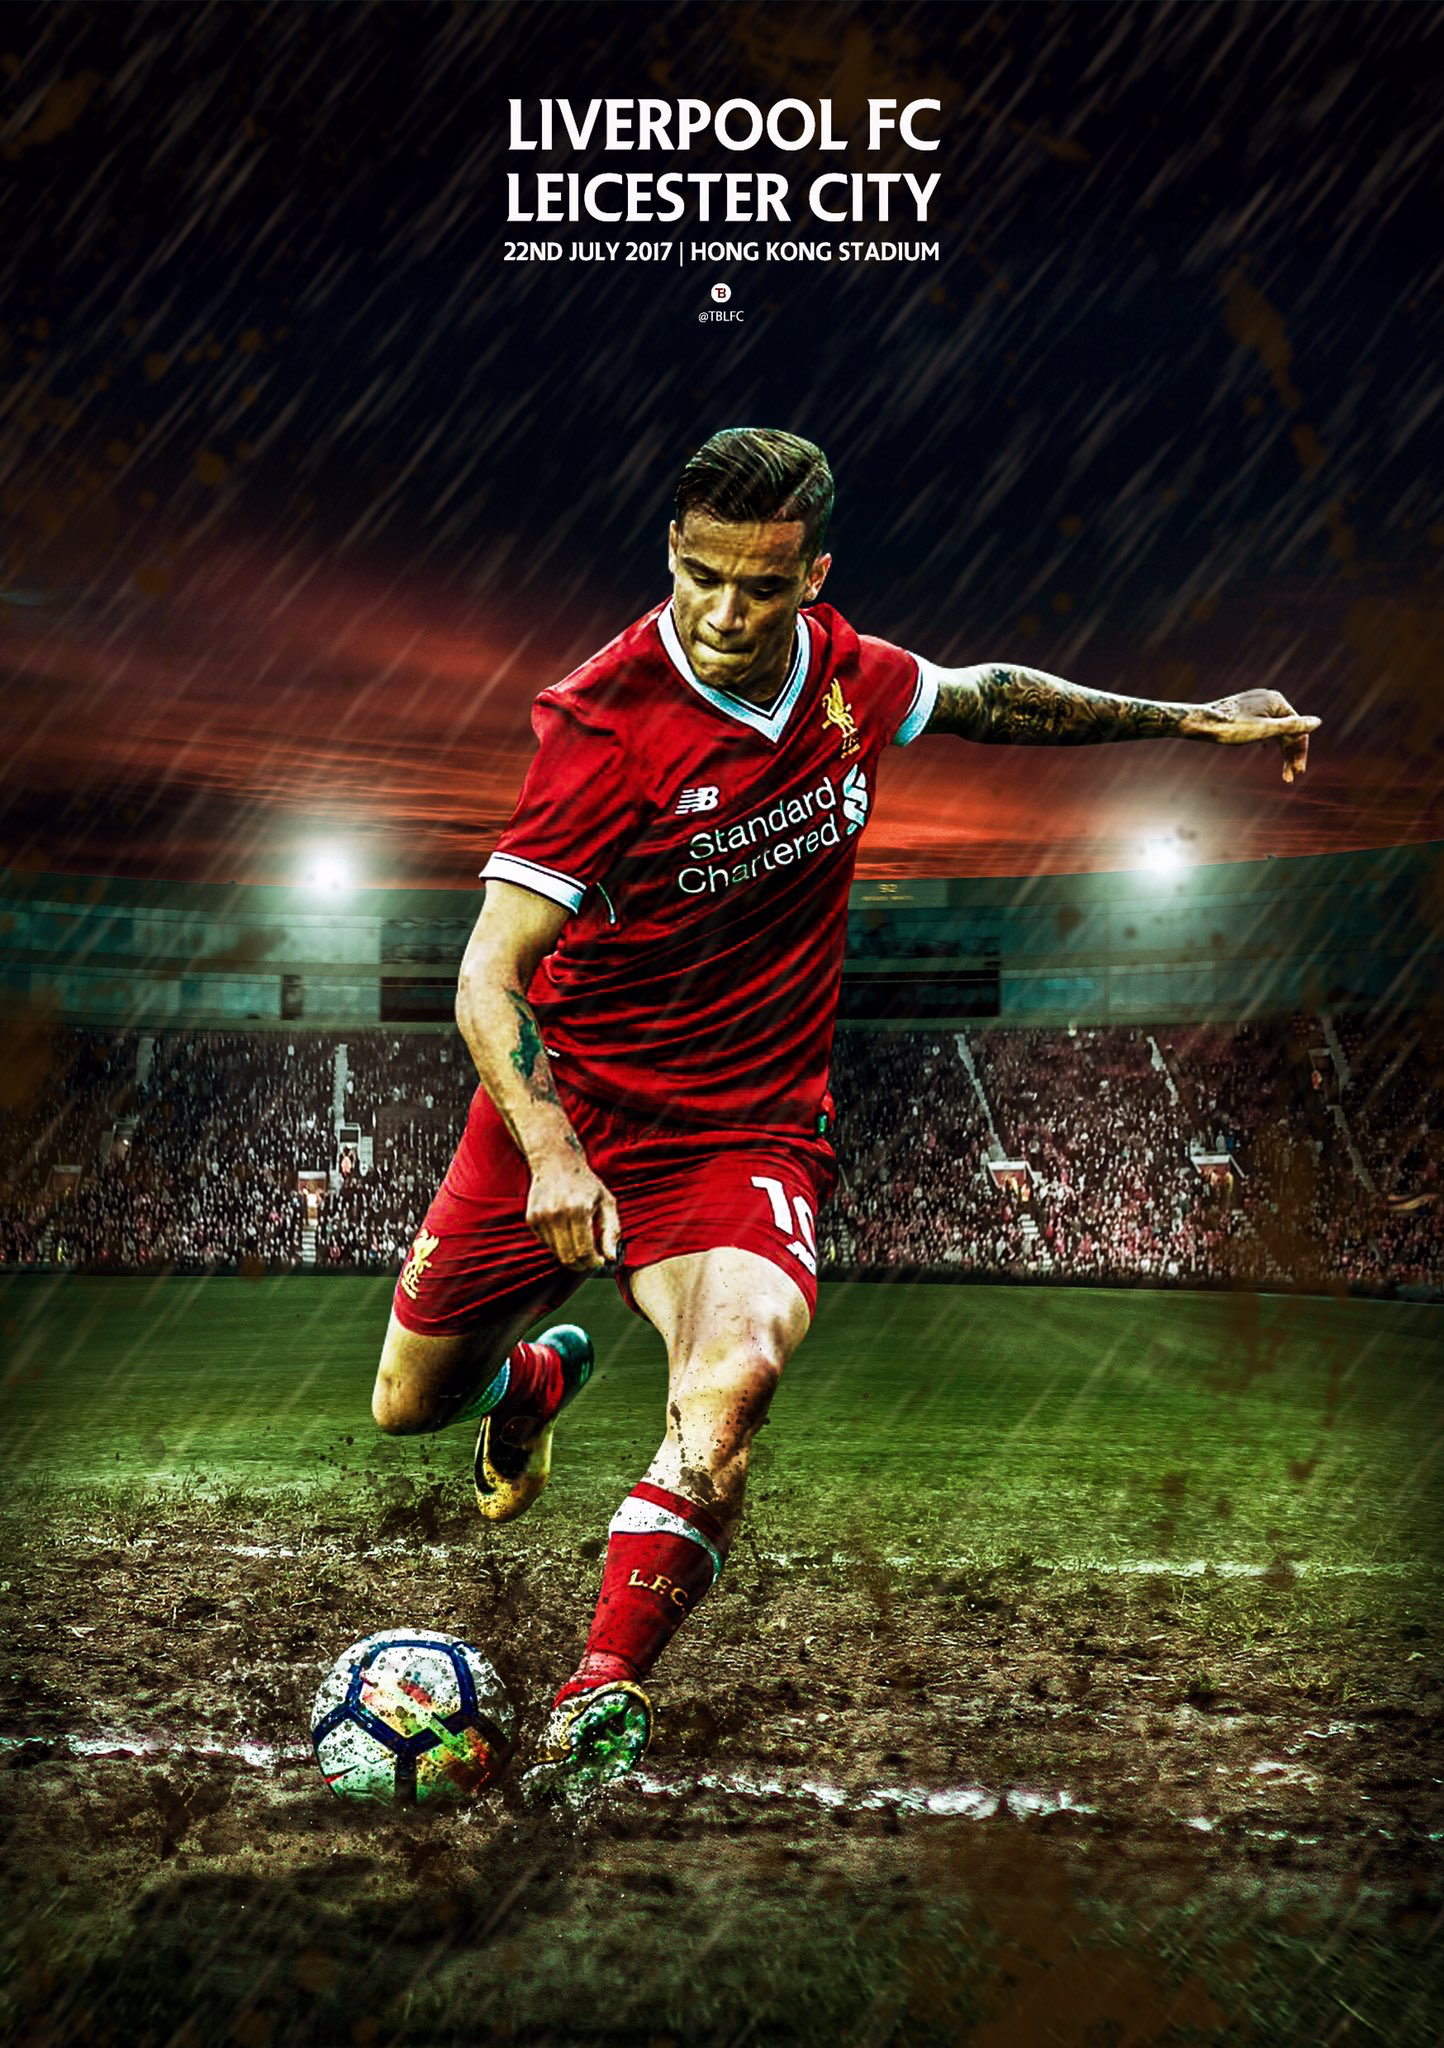 Pin by Des on LFC Matchday Designs 2017-18 | Liverpool football club